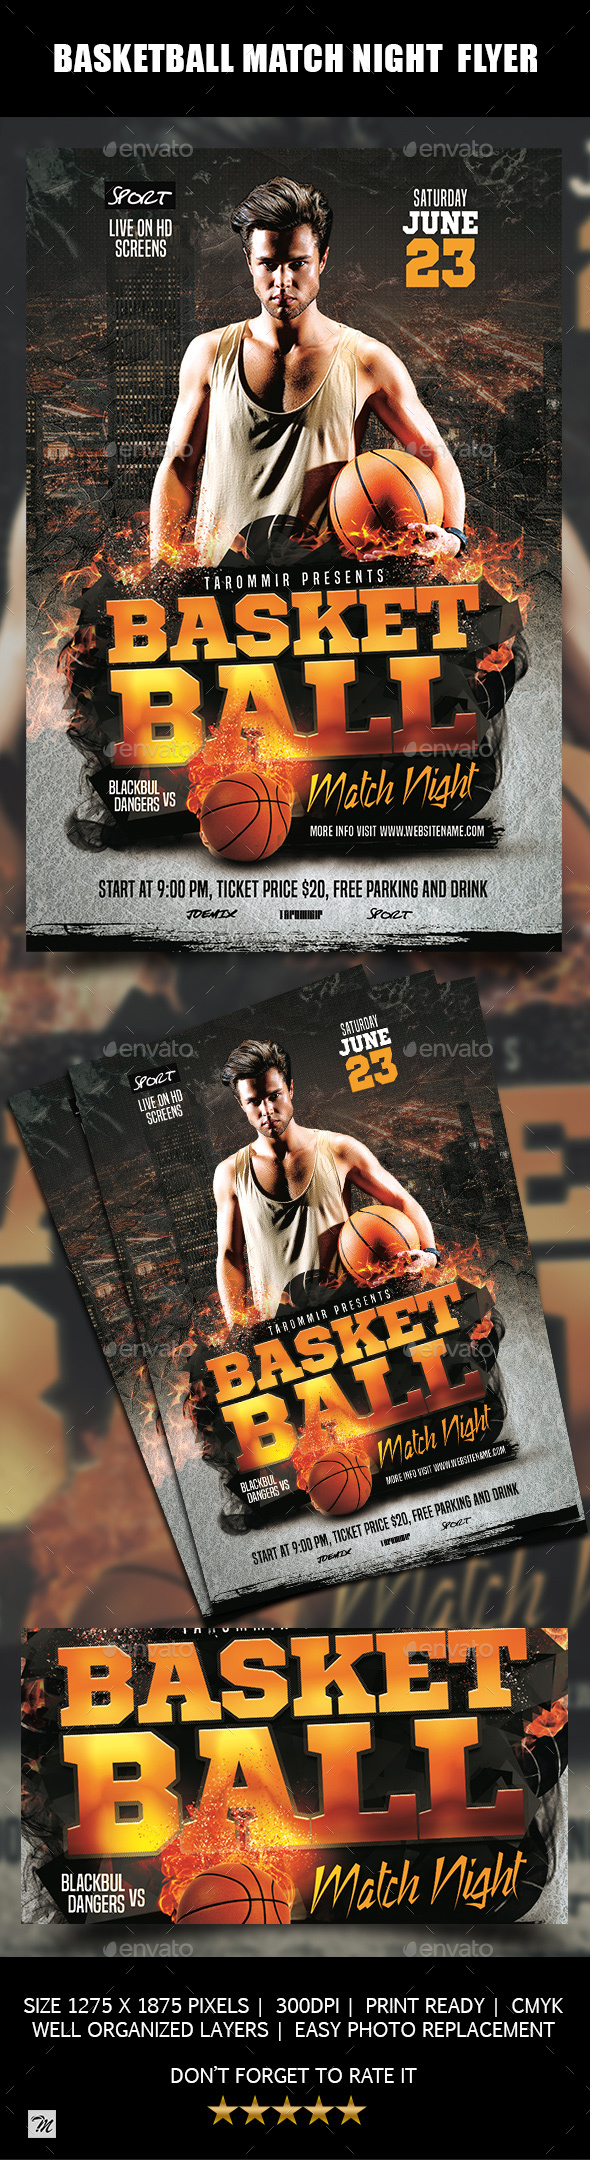 Basketball Match Night Flyer - Sports Events